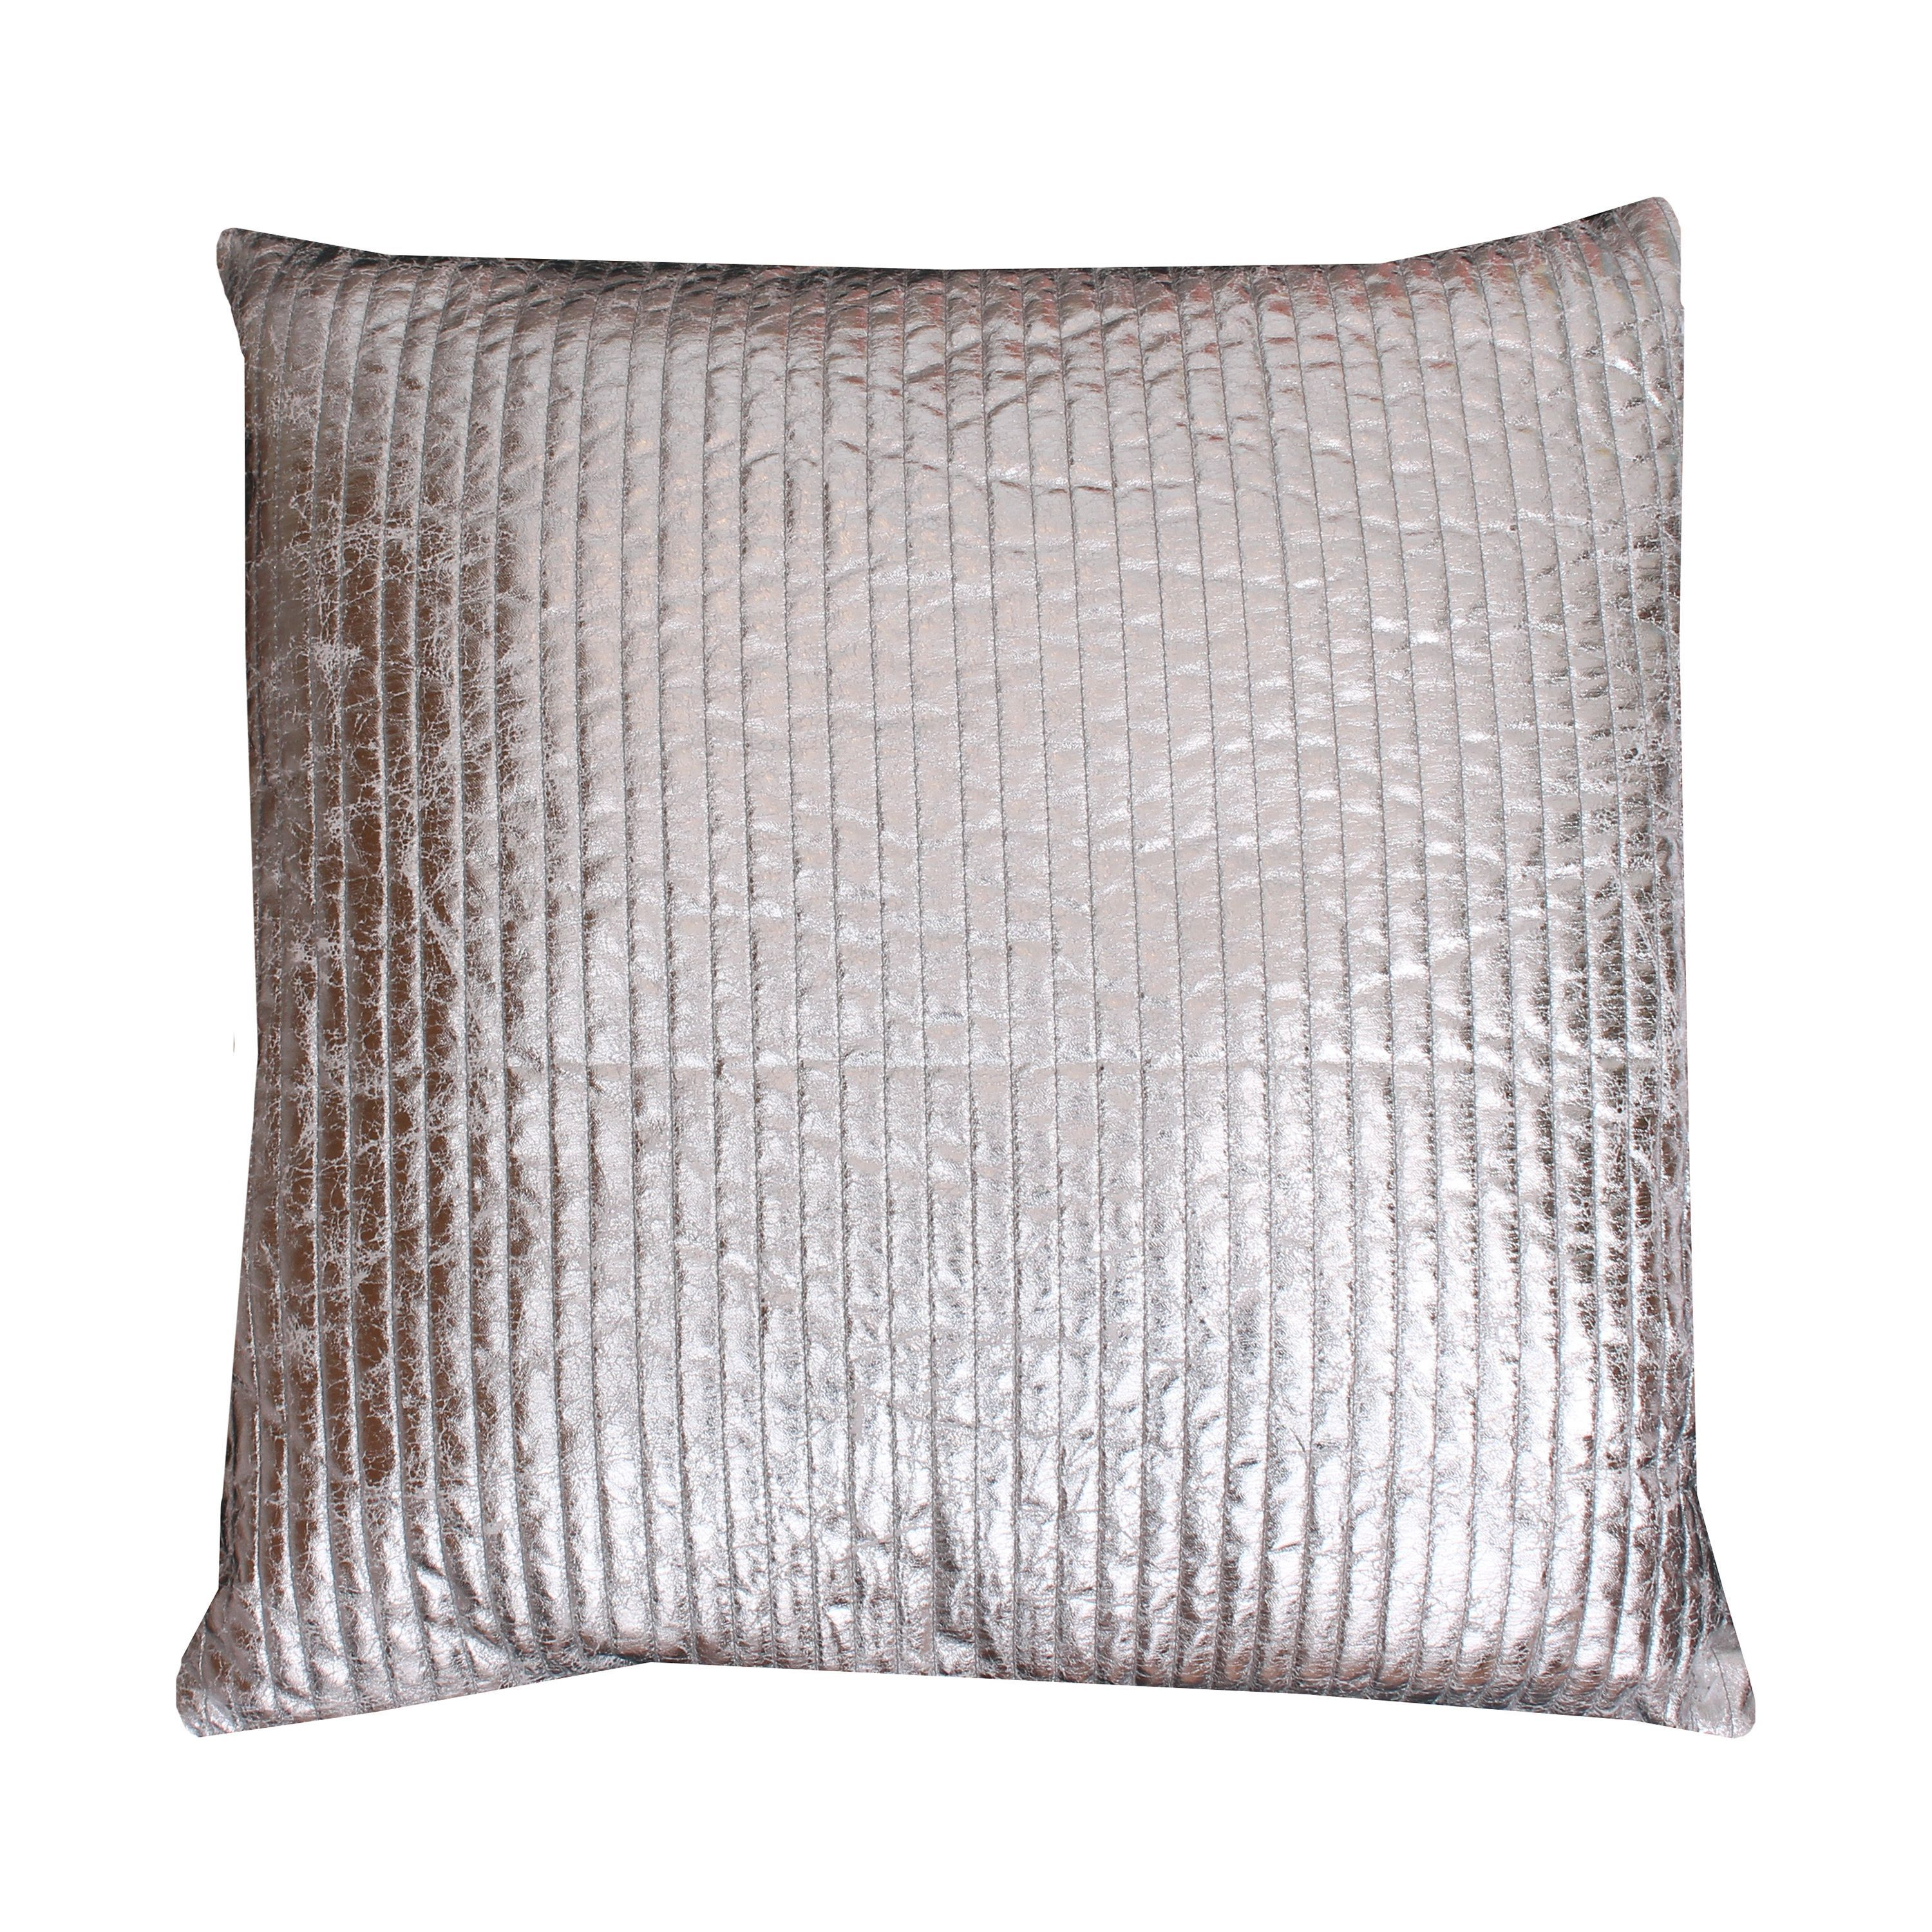 Thro By Marlo Lorenz Gary Quilted Crackle Feather Filled Square Throw Pillow Silver Pillows Metallic Pillow Throw Pillows